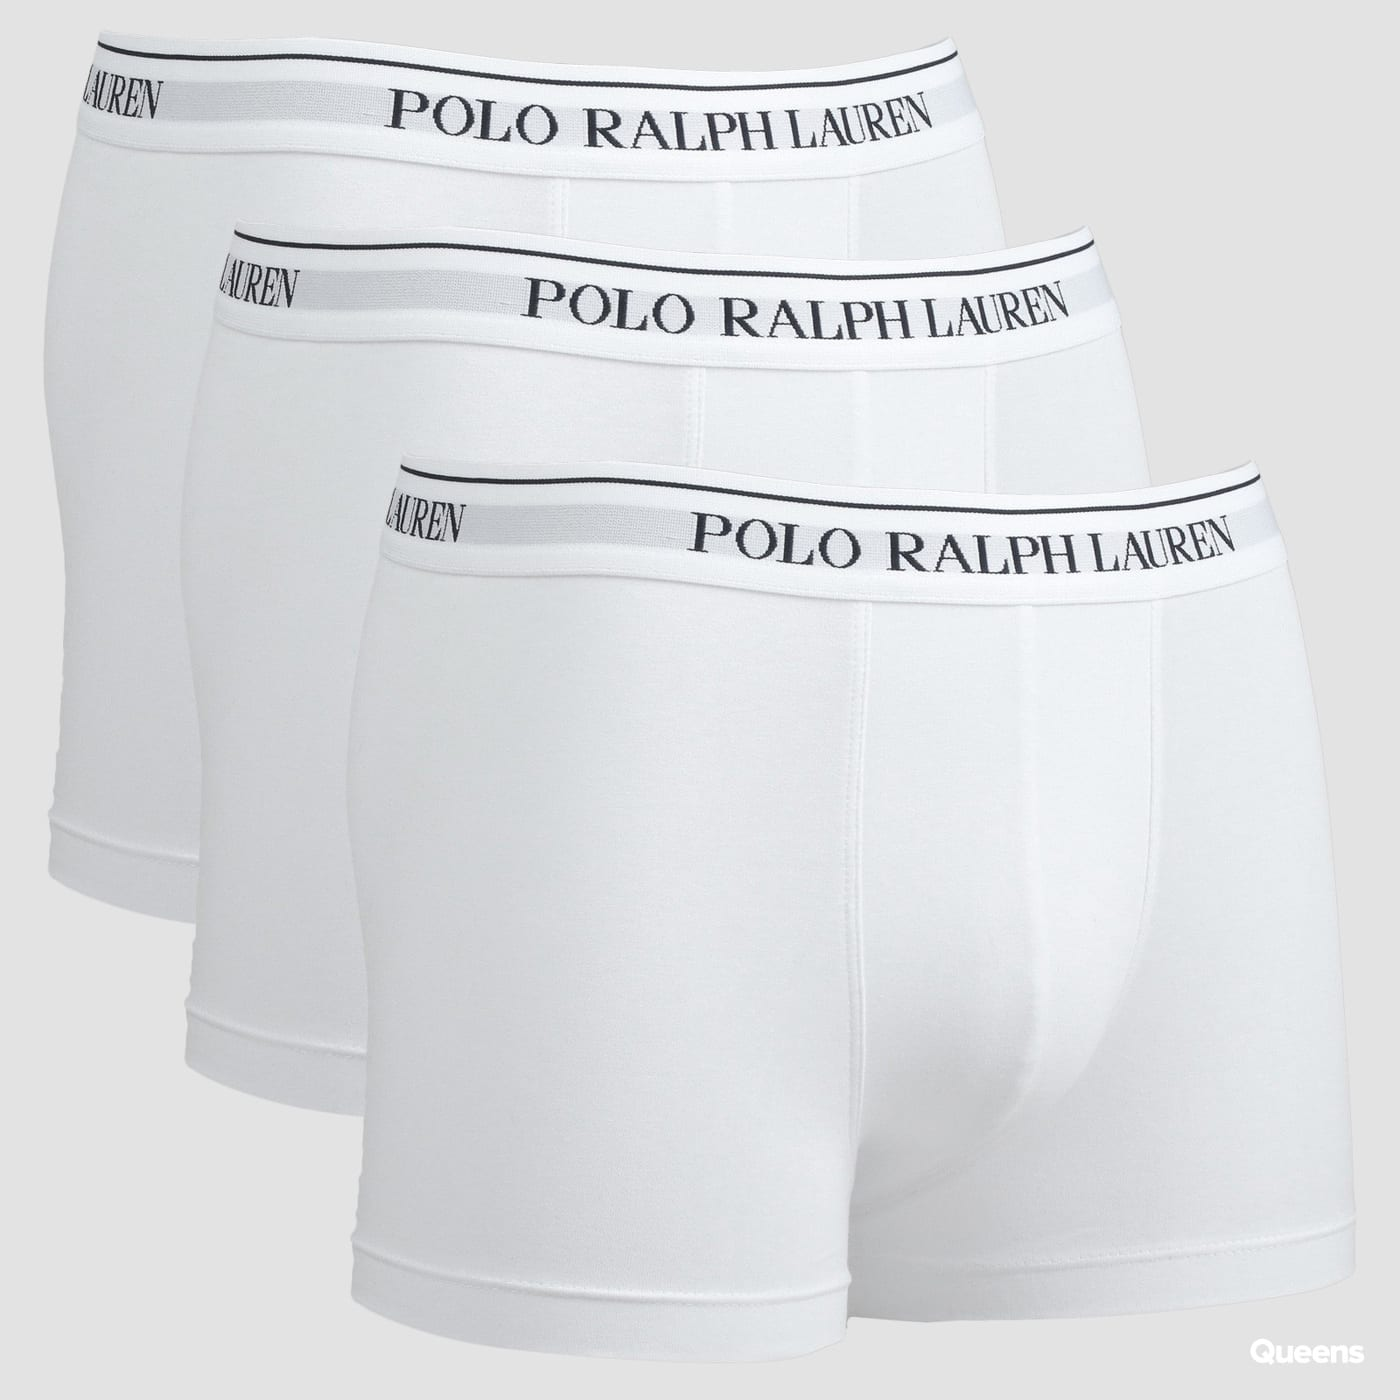 Polo Ralph Lauren 3 Packs Classic Trunks C/O biele